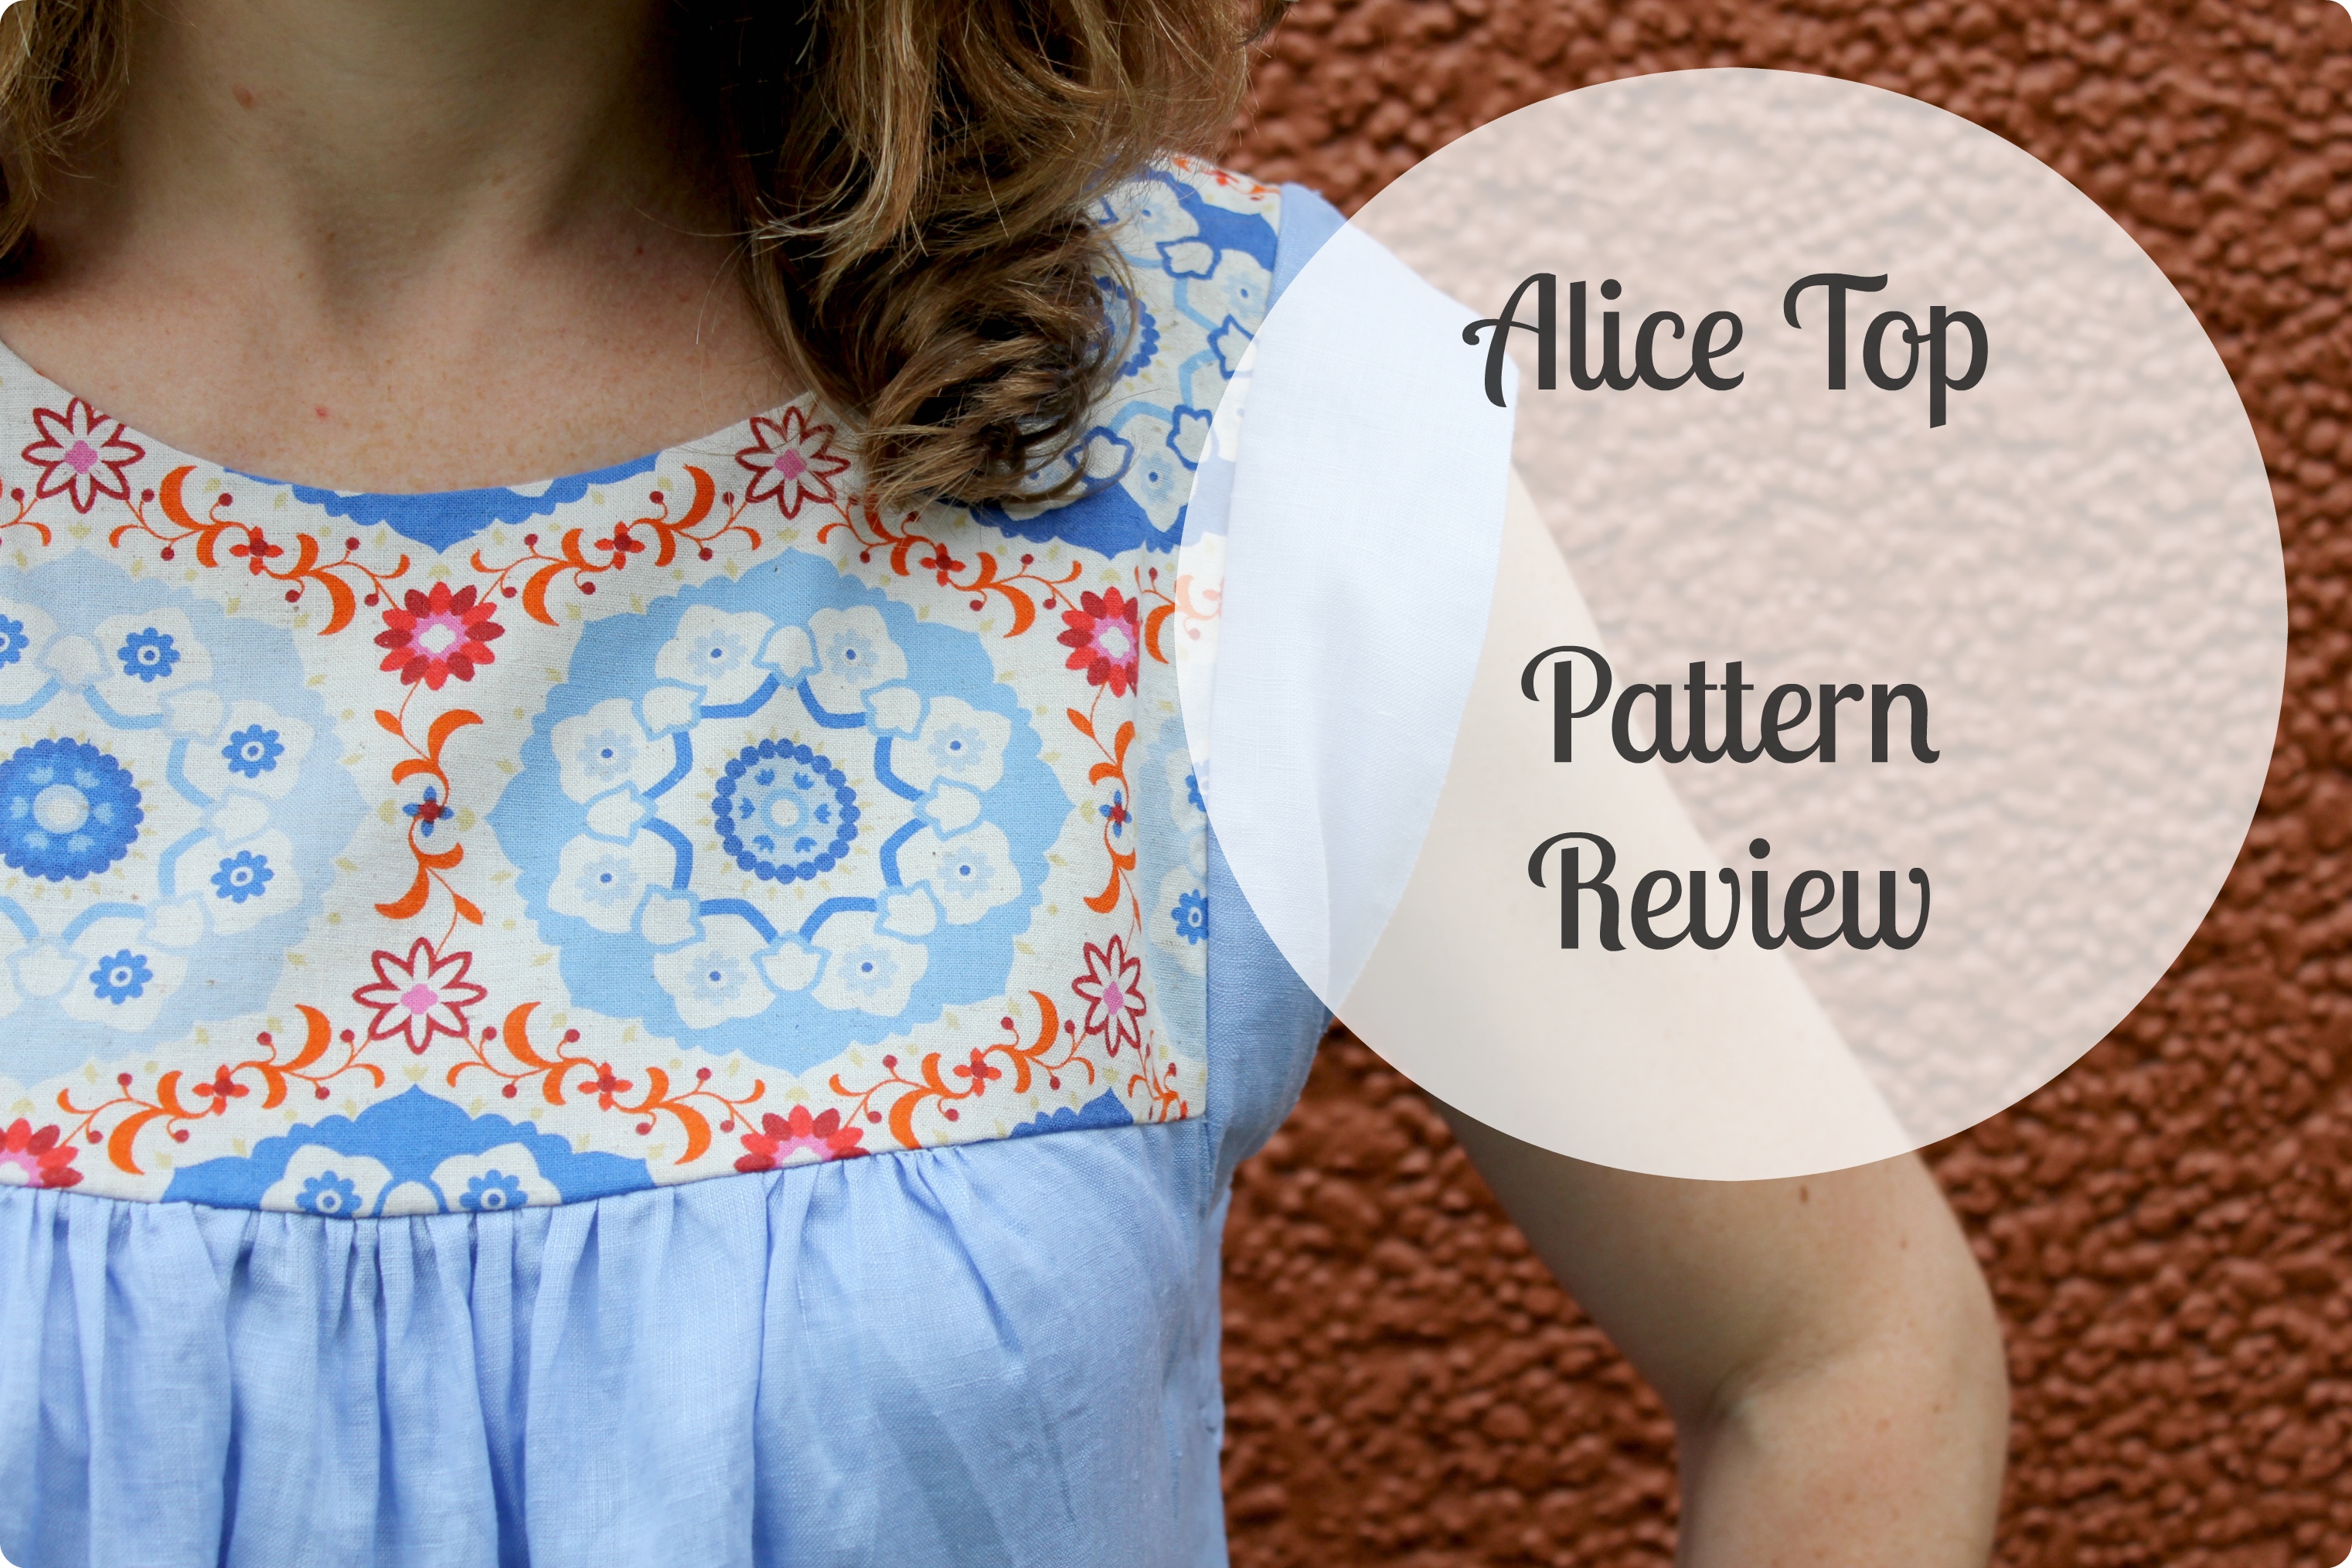 Alice Top Pattern Review